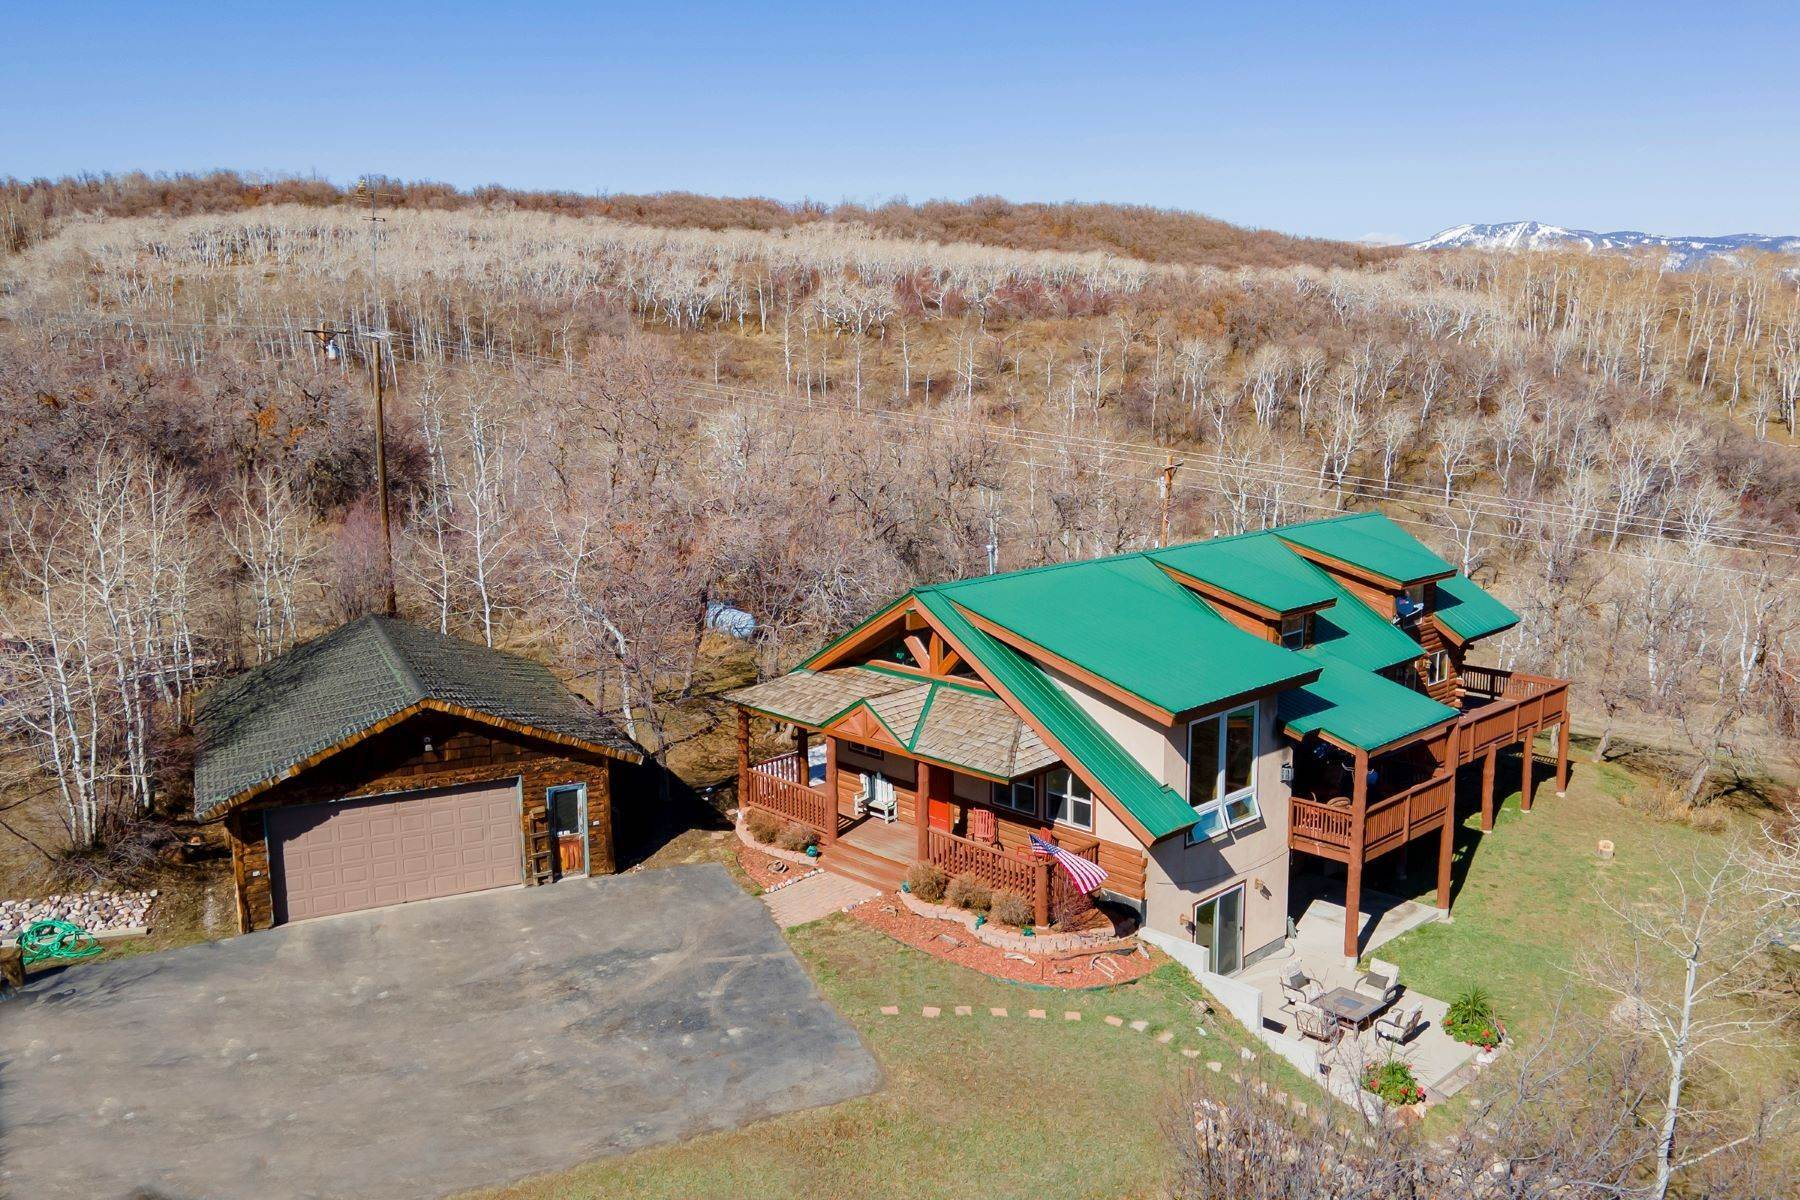 Single Family Homes for Sale at South Valley Home on Acreage 33020 County Road 41 Steamboat Springs, Colorado 80487 United States